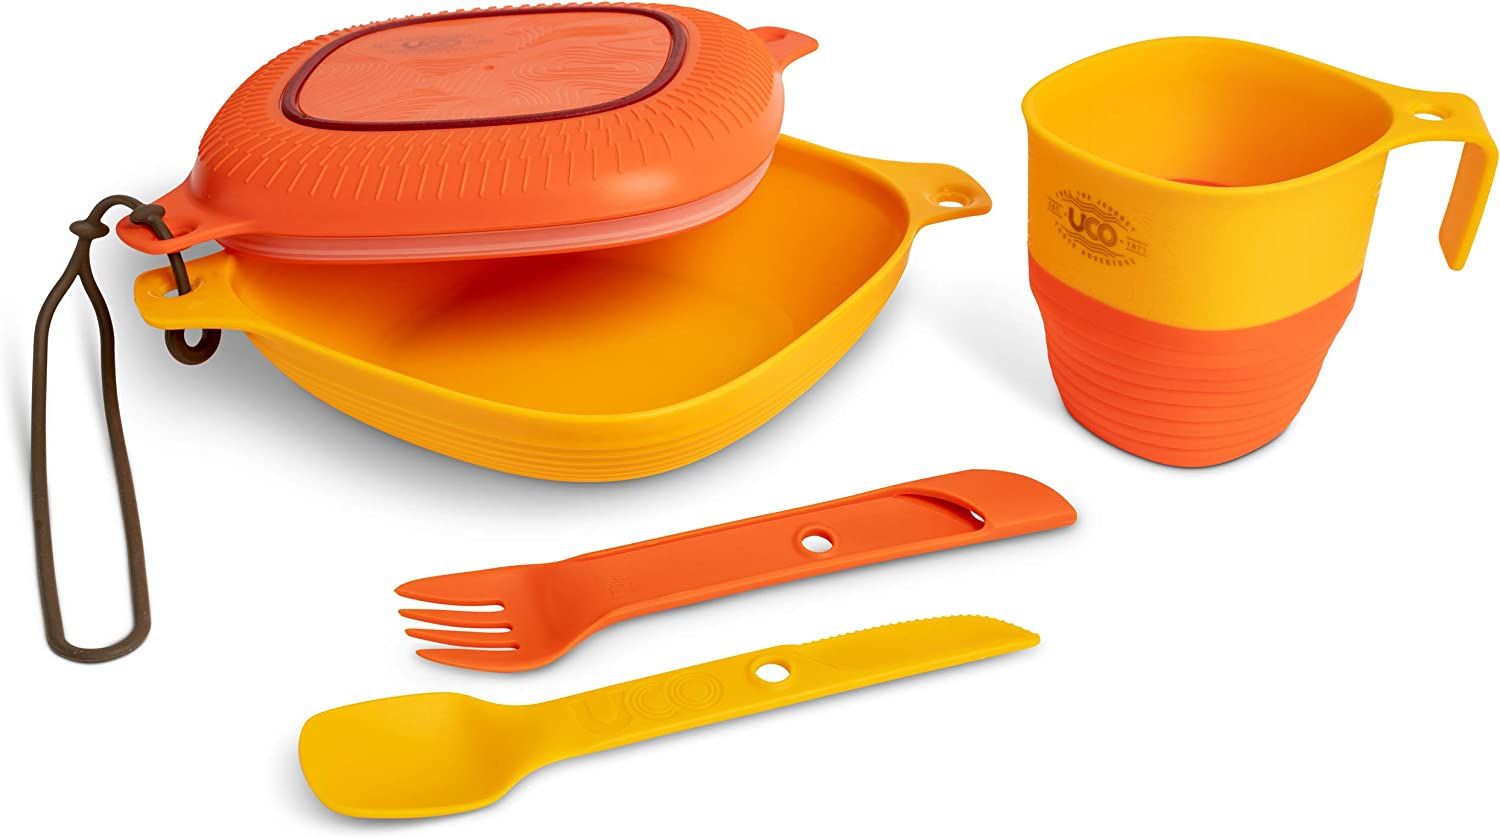 UCO 6-Piece Great interest Camping Max 76% OFF Mess Kit with Cup Camp Swi and Plate Bowl